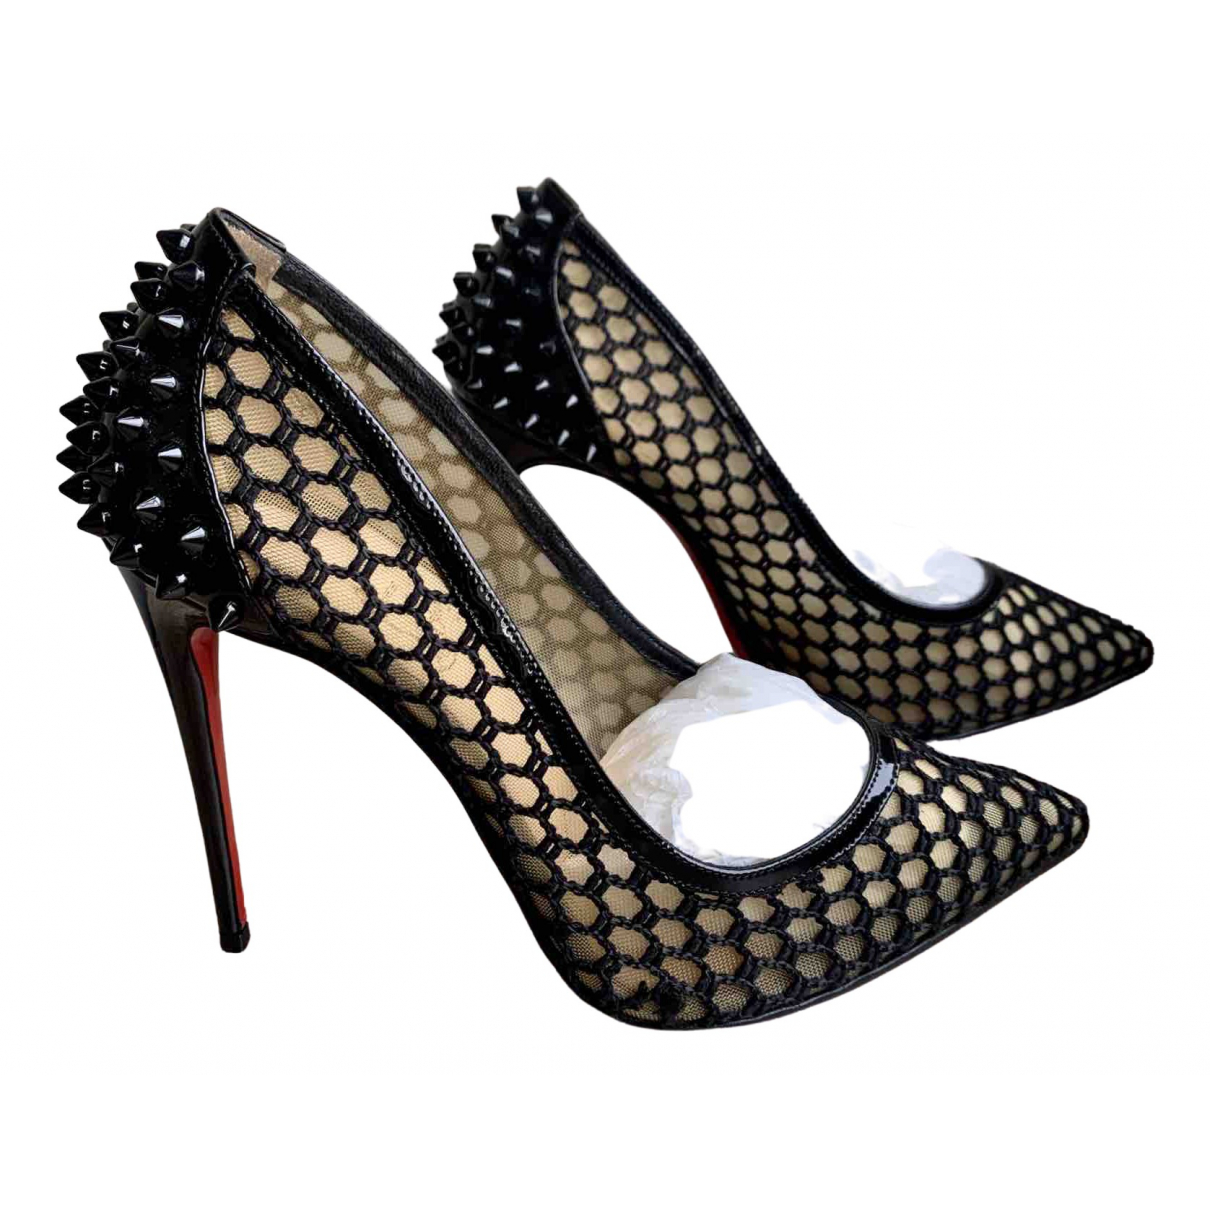 Christian Louboutin N Black Patent leather Heels for Women 38 EU